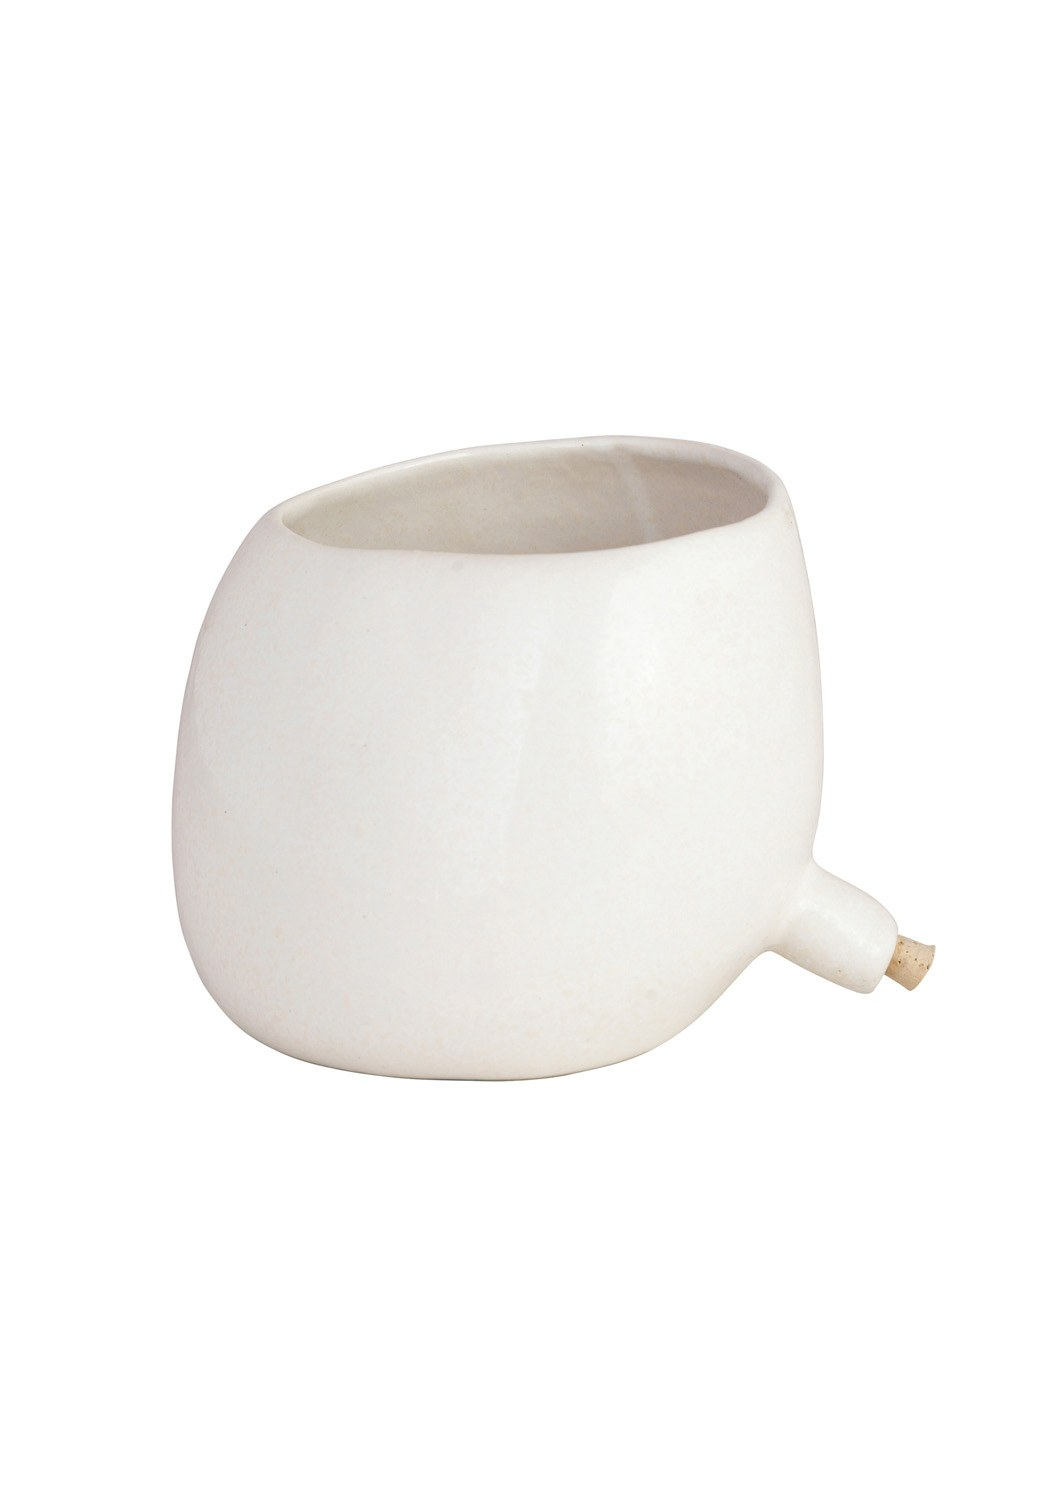 Spouted Plant Pot White_1